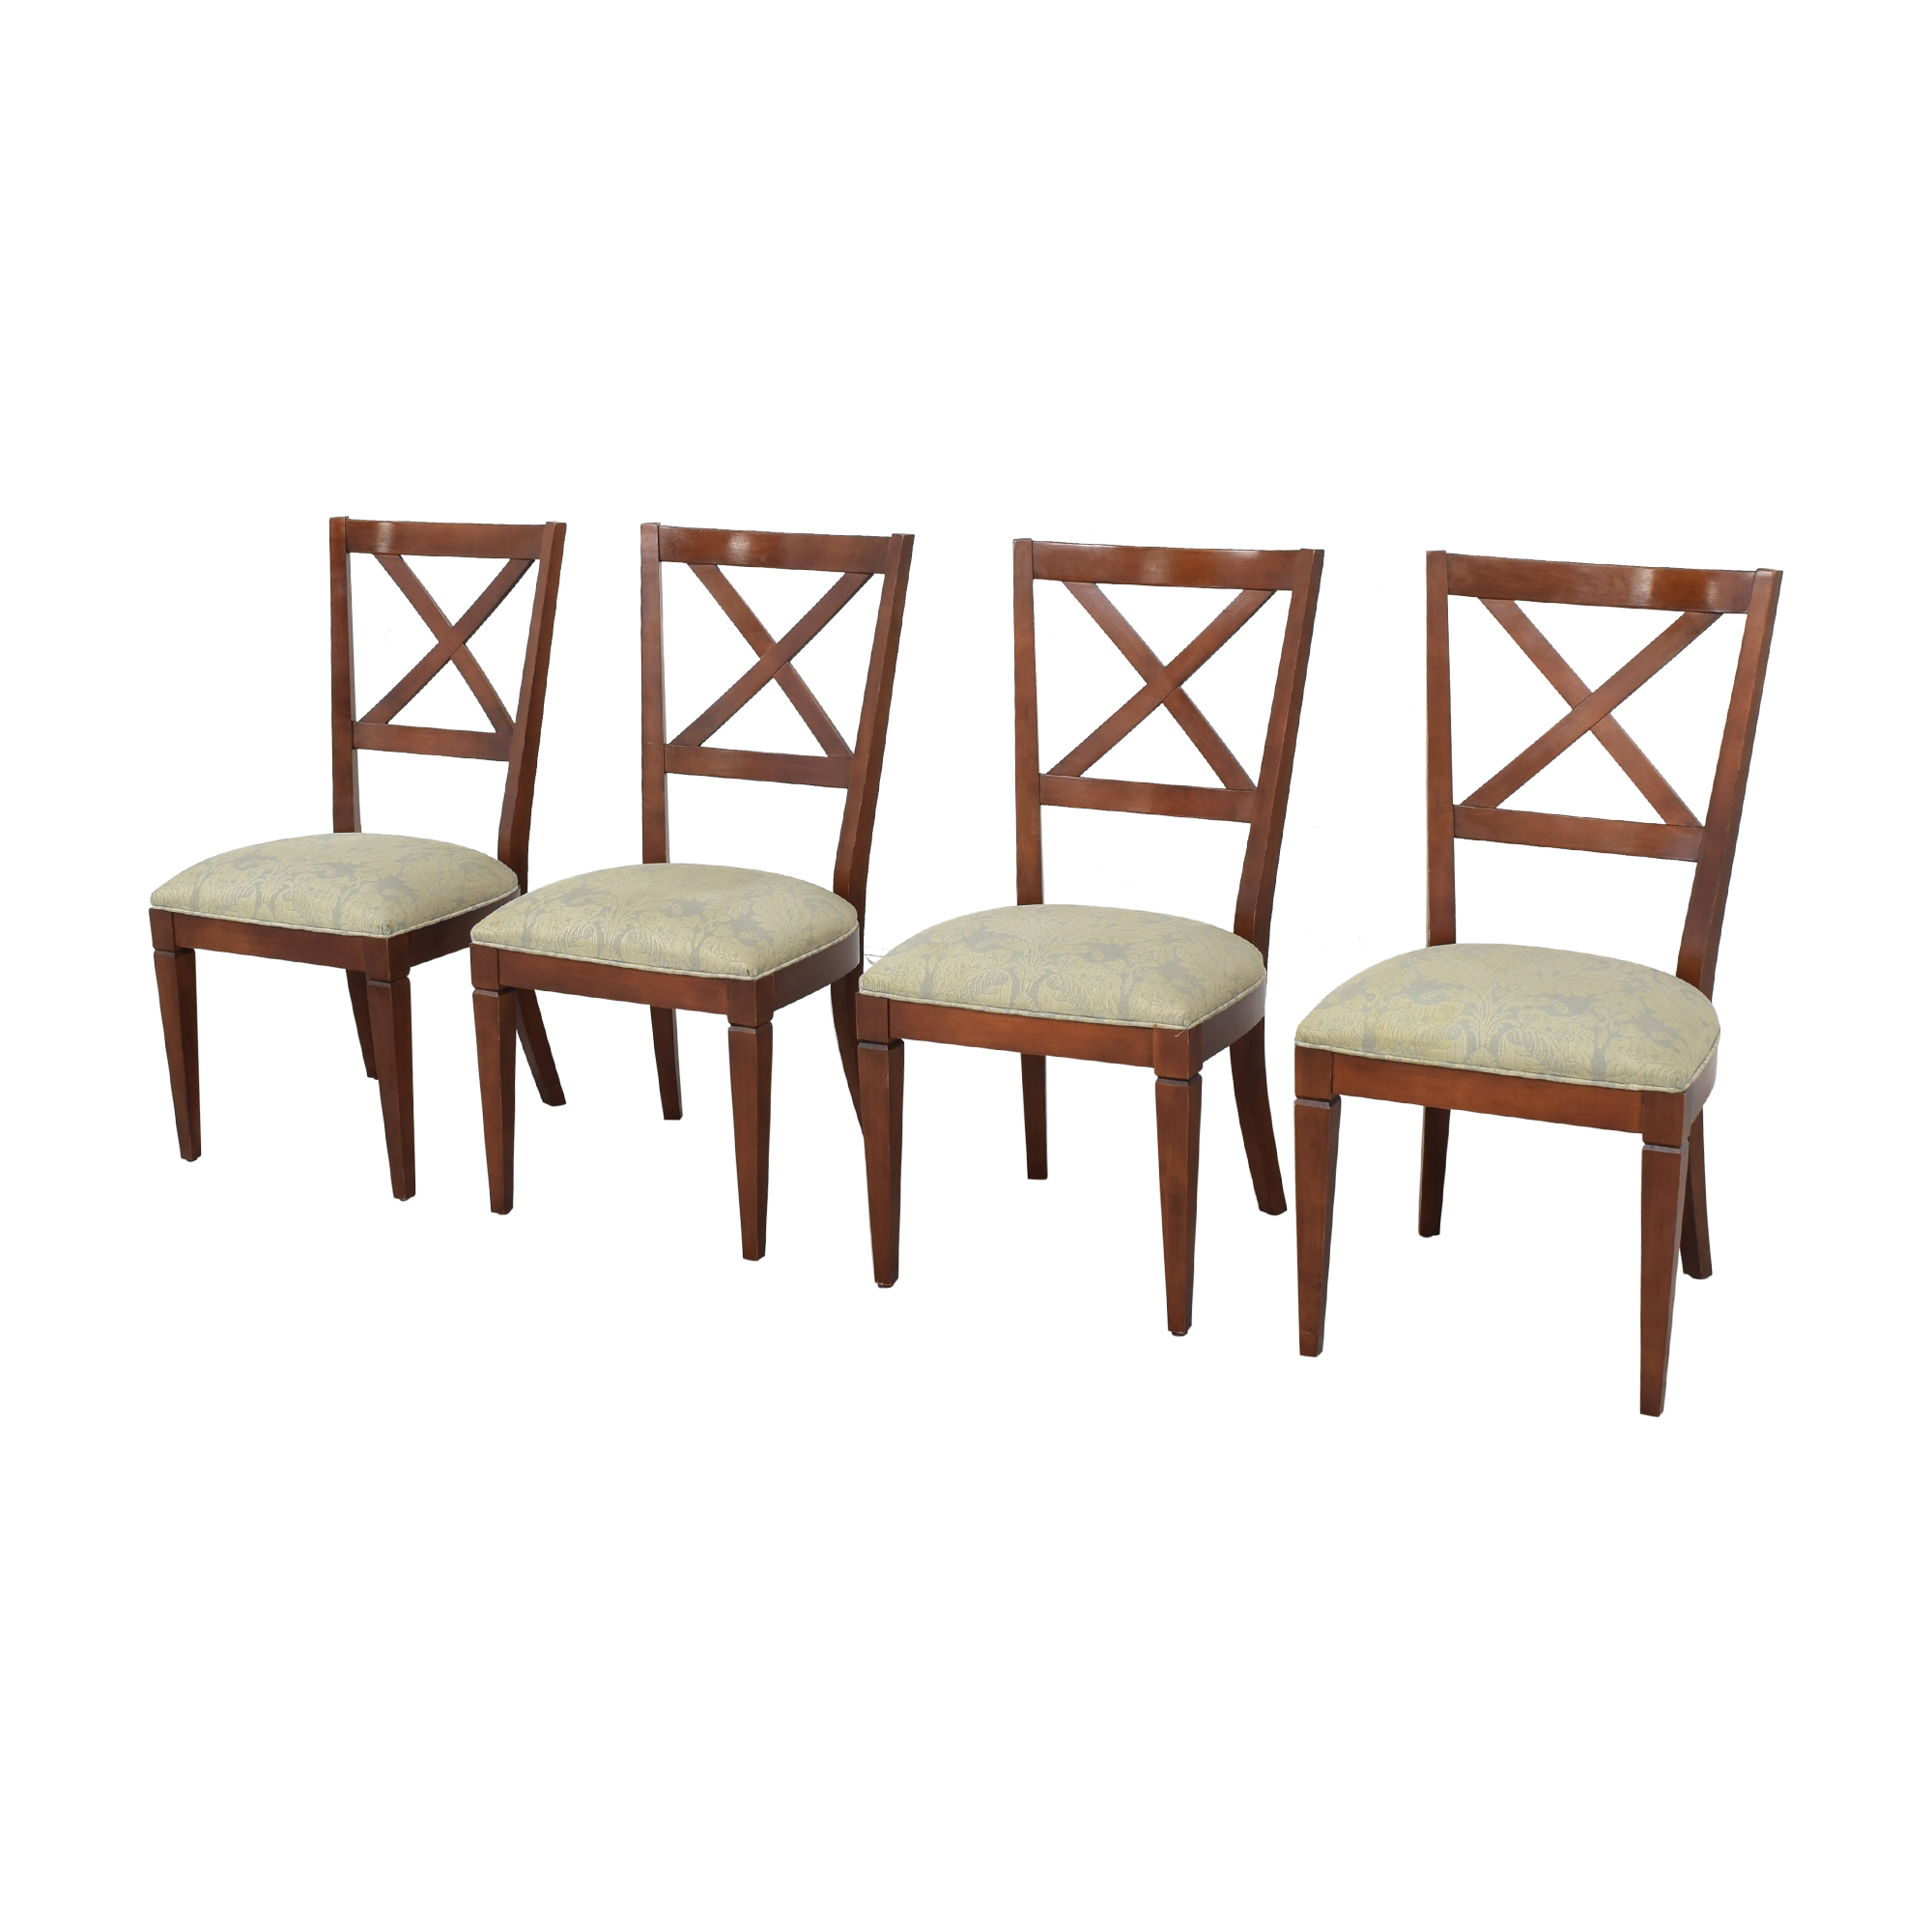 Ethan Allen Ethan Allen Dining Chairs coupon